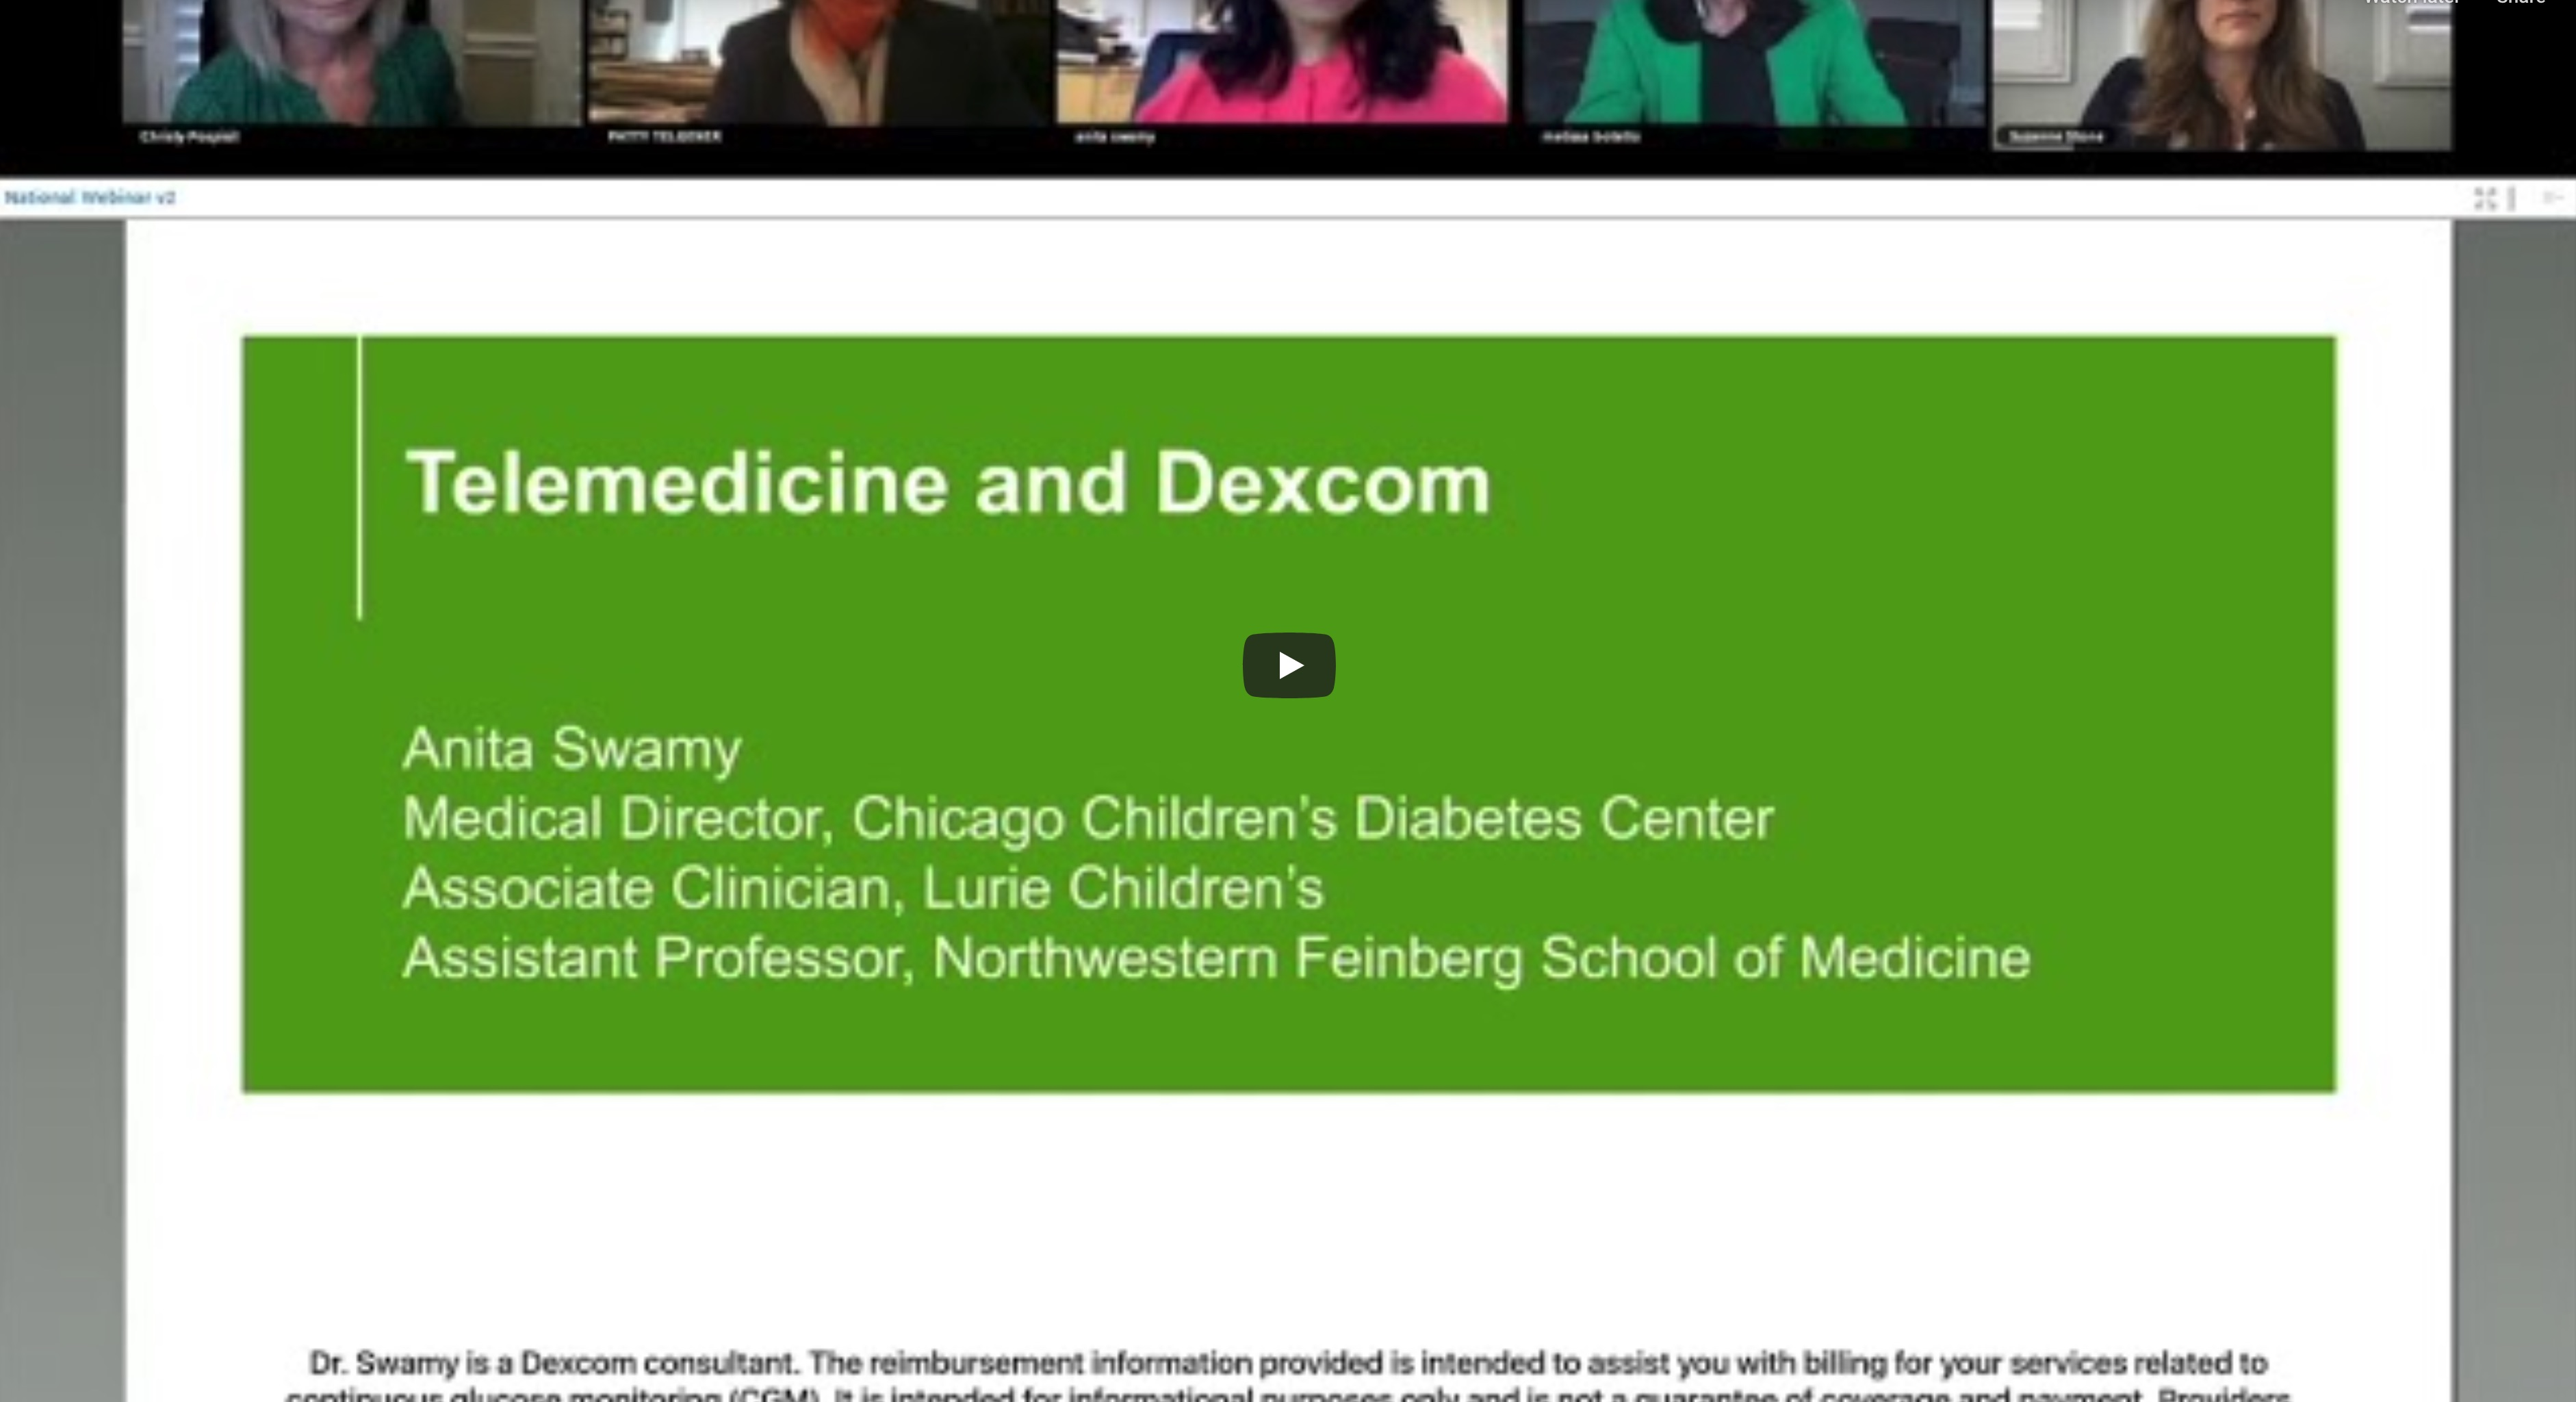 PRACTICAL TIPS AND CLINICAL RESOURCES FOR TELEHEALTH VISITS WITH DEXCOM CGM